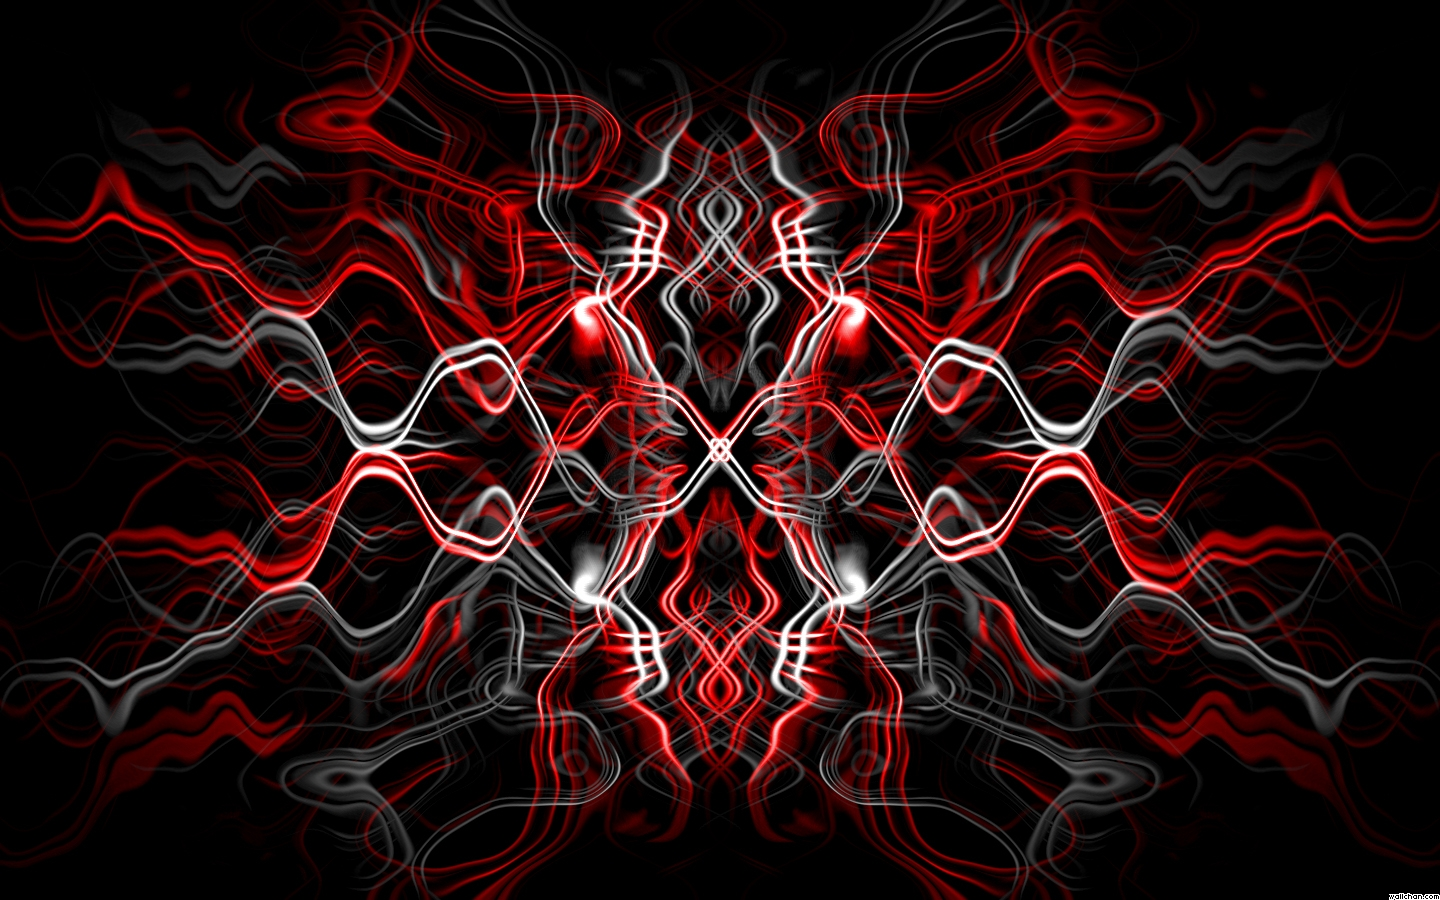 Red black abstract wallpaper wallpapersafari for Red wallpaper designs for walls